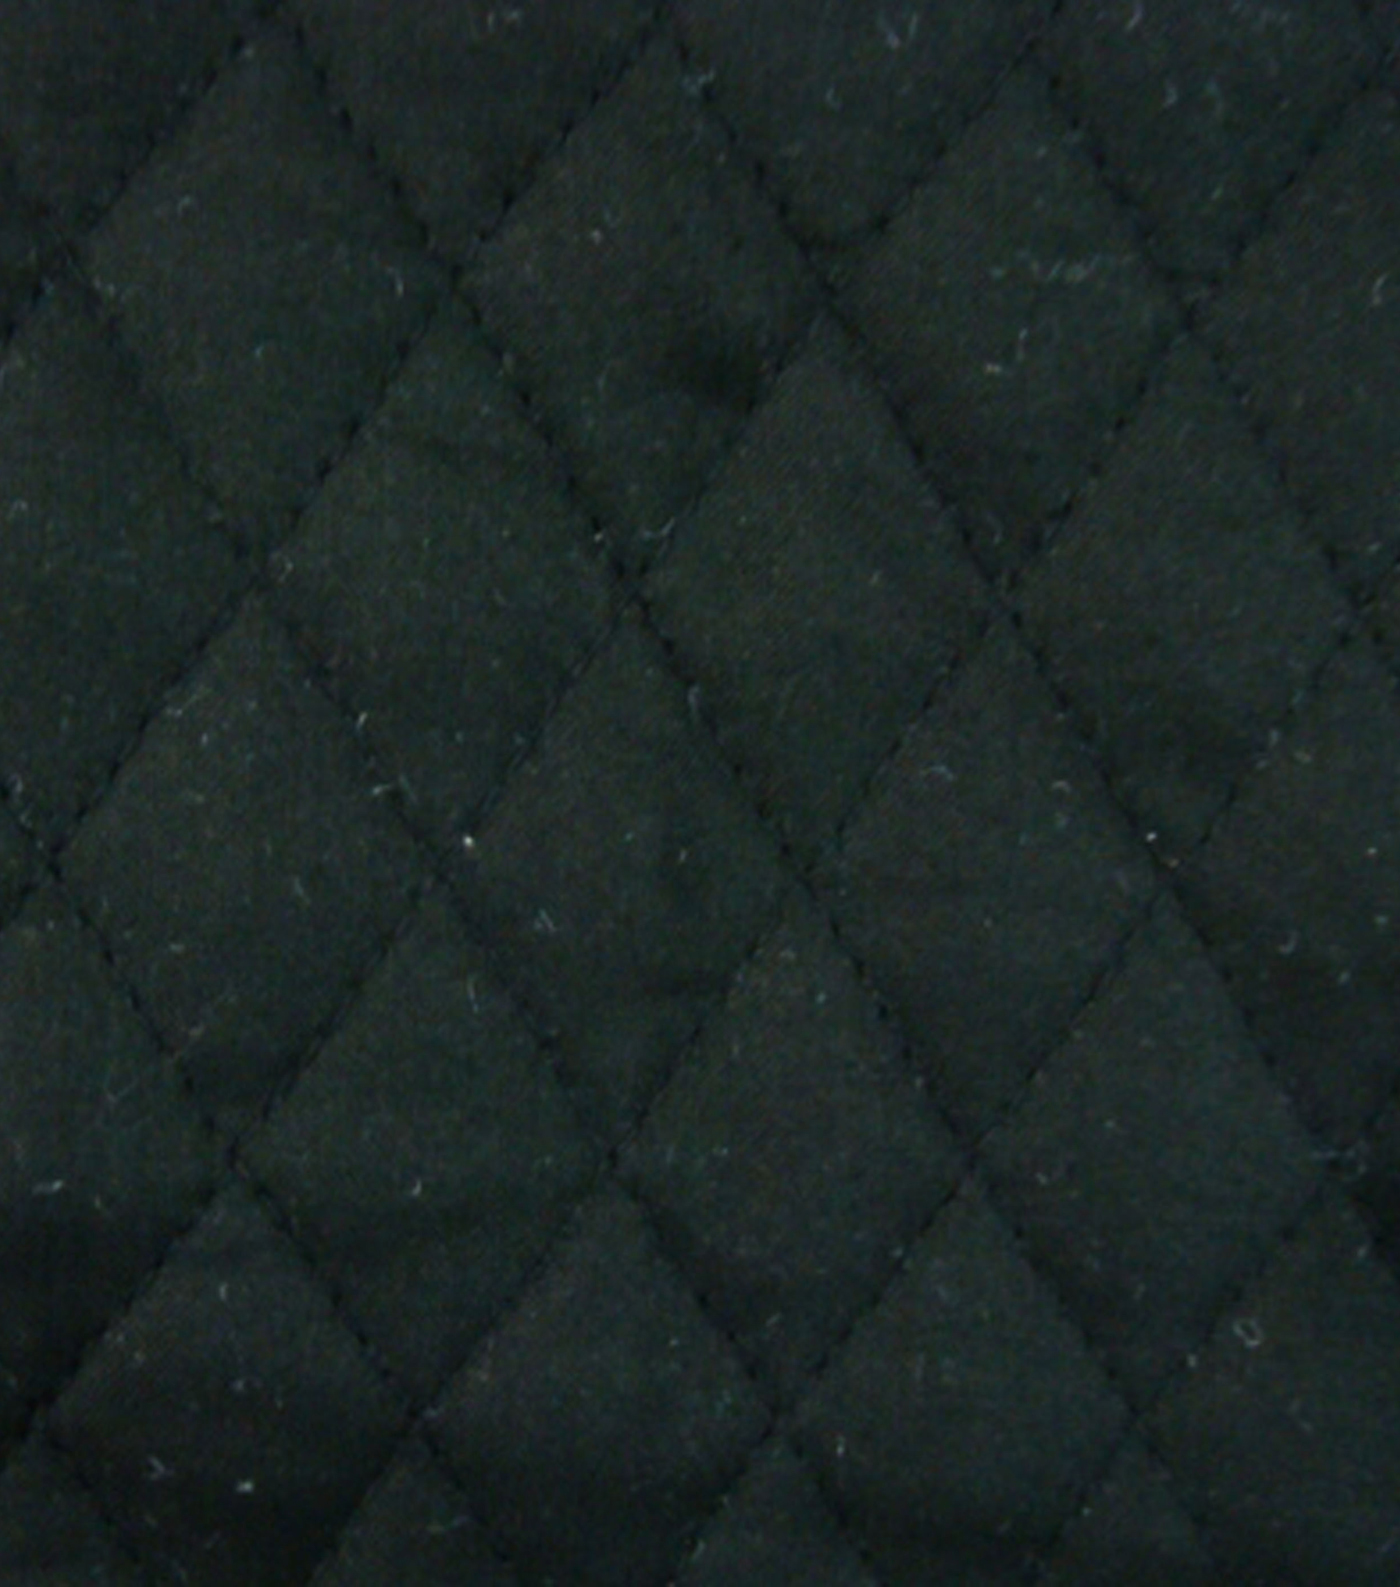 Quilted Solids- Black Diamond | JOANN : pre quilted fabric patterns - Adamdwight.com